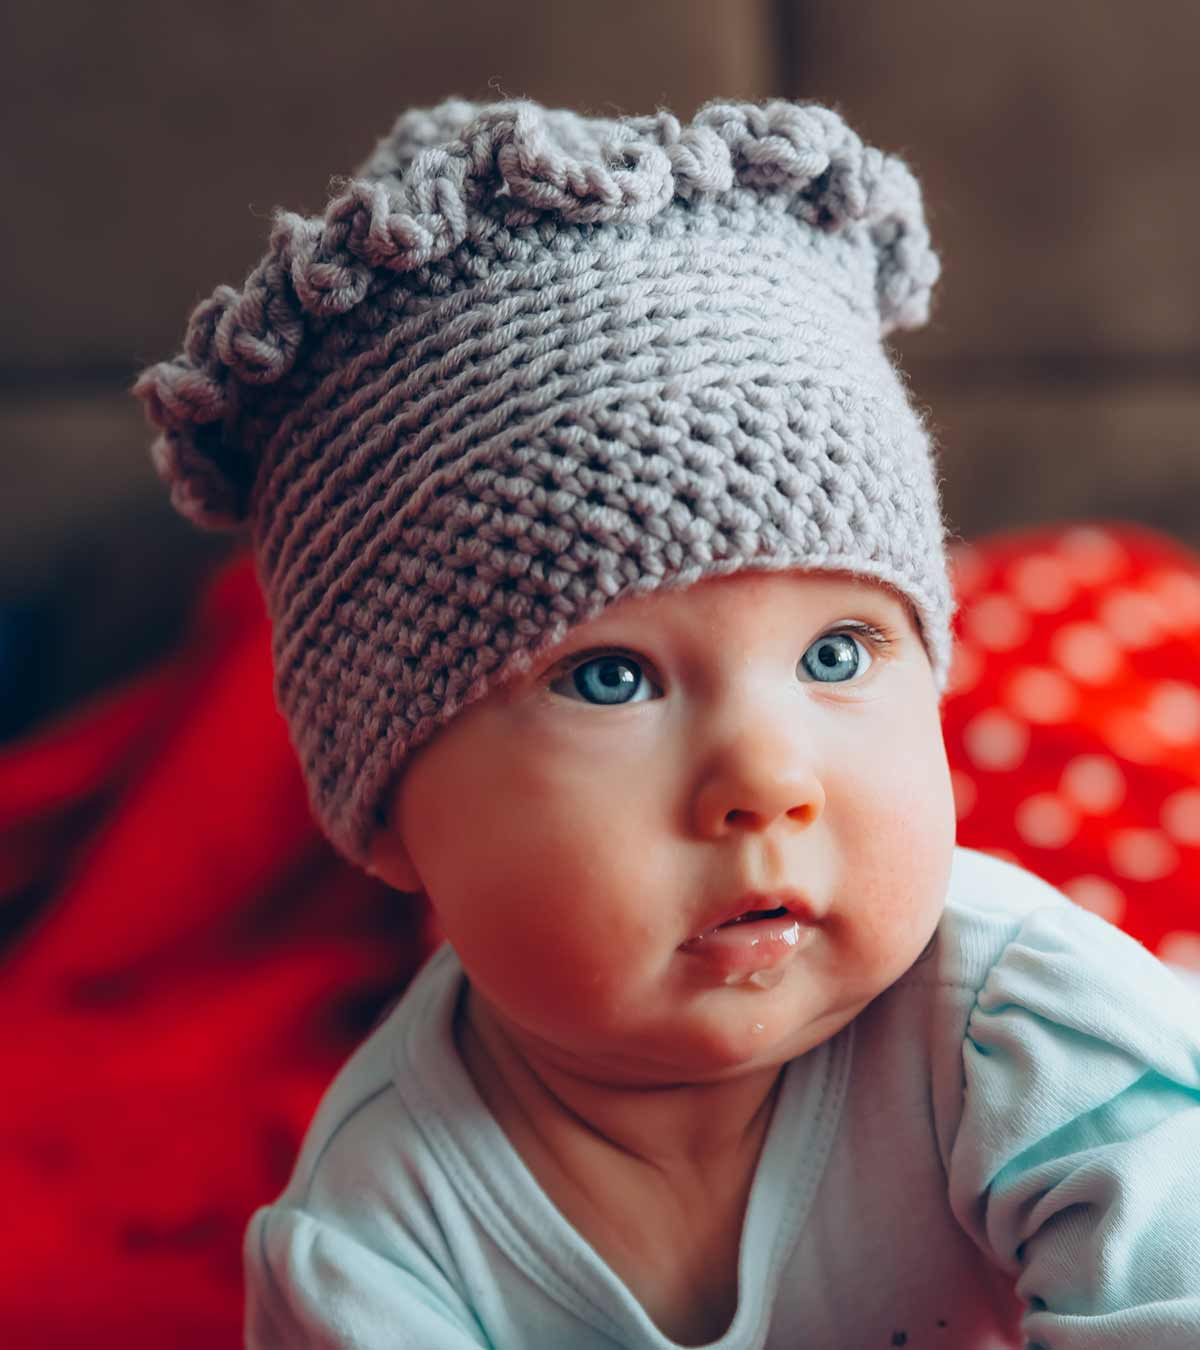 1000 Top Baby Boy Names In The U S Popular Boy Names For 2020